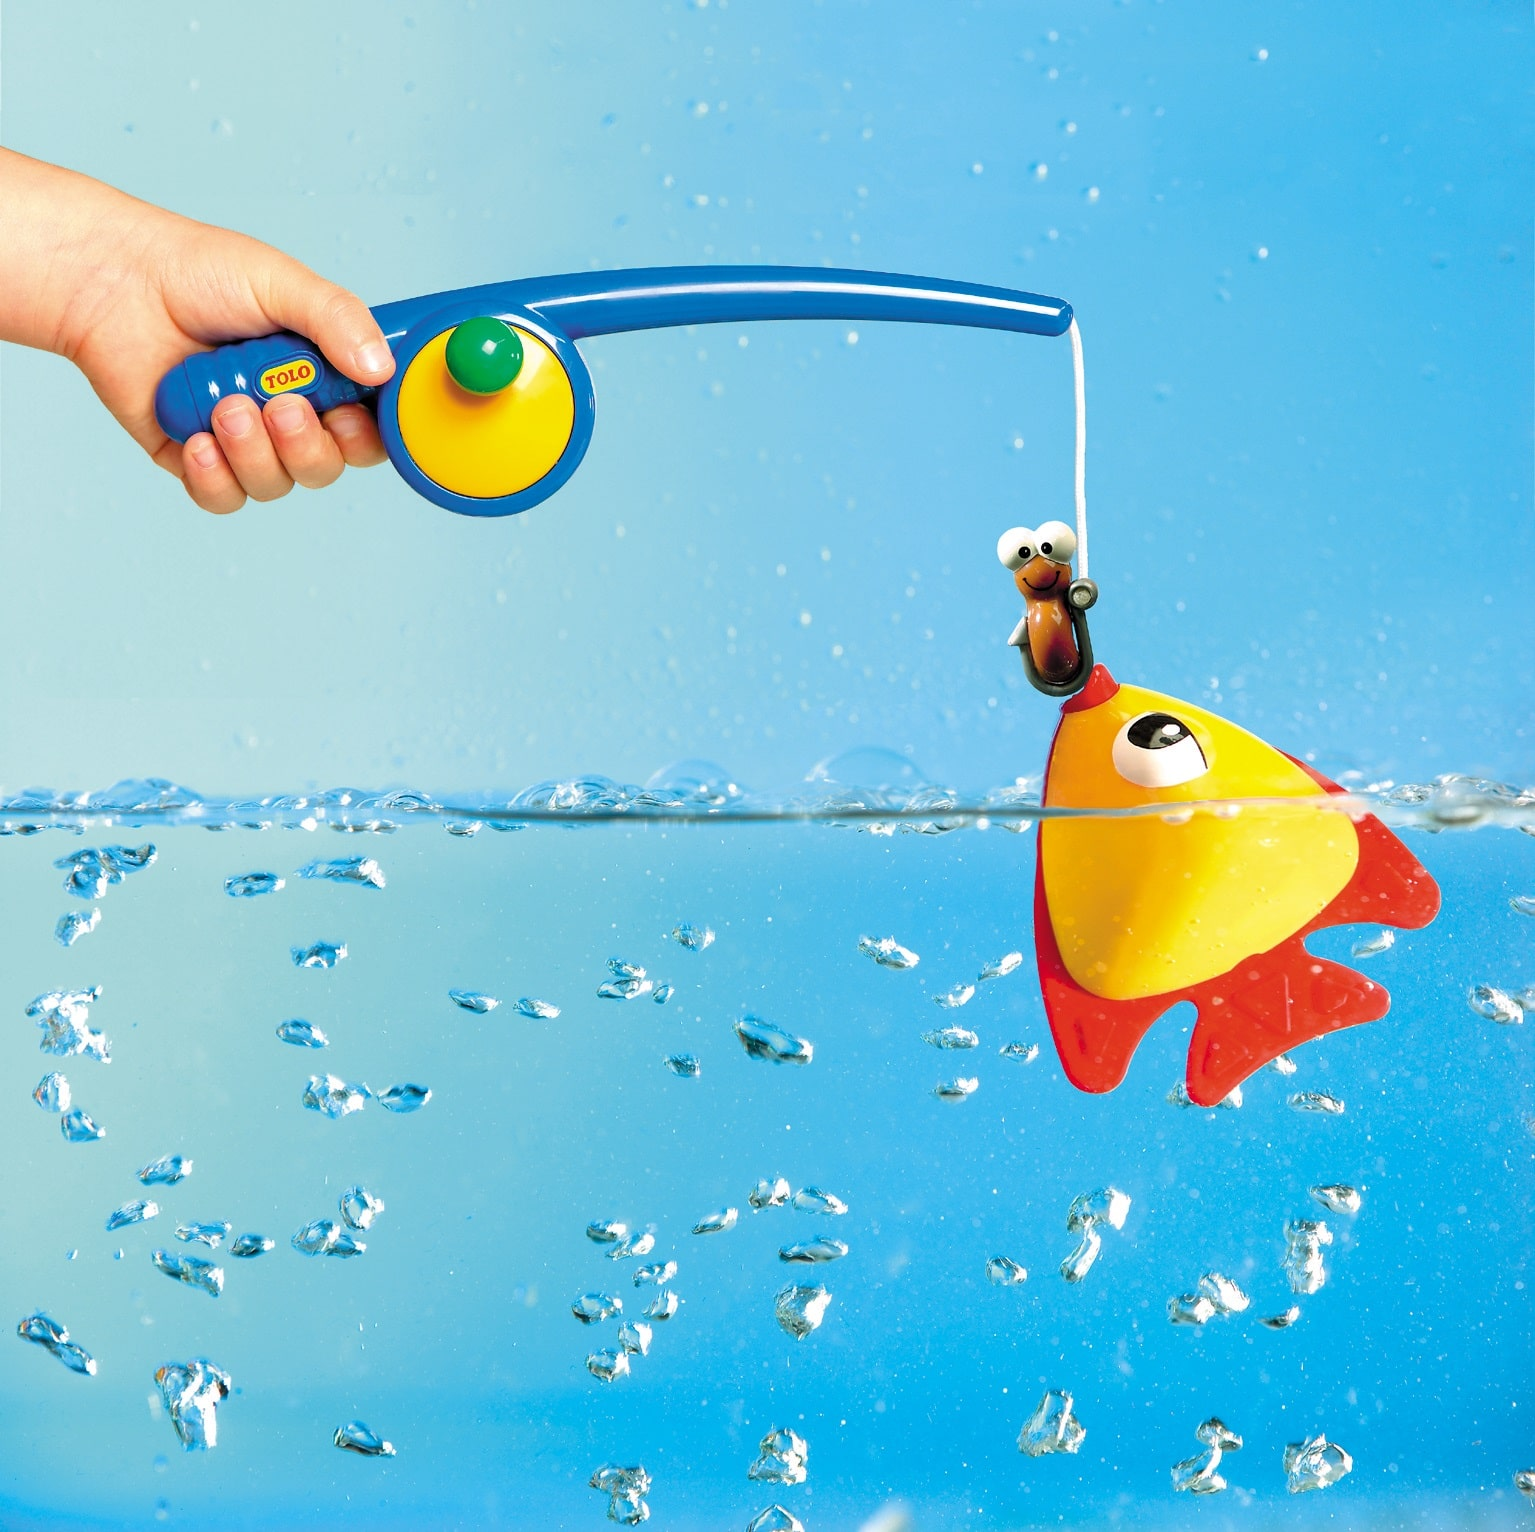 magnetic toy fishing pole and fish